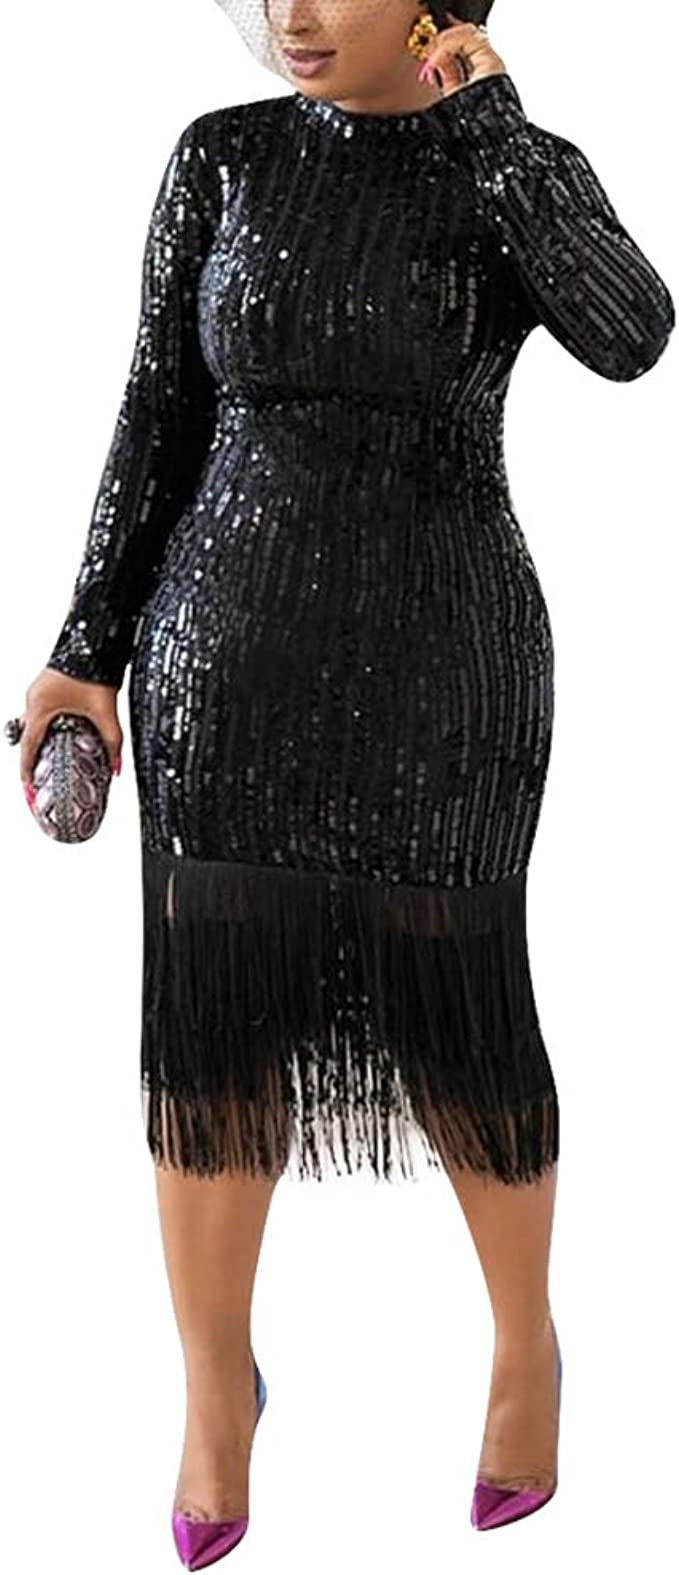 Women Bandage Bodycon Long Sleeve Sequins Evening Party Cocktail Short Dress